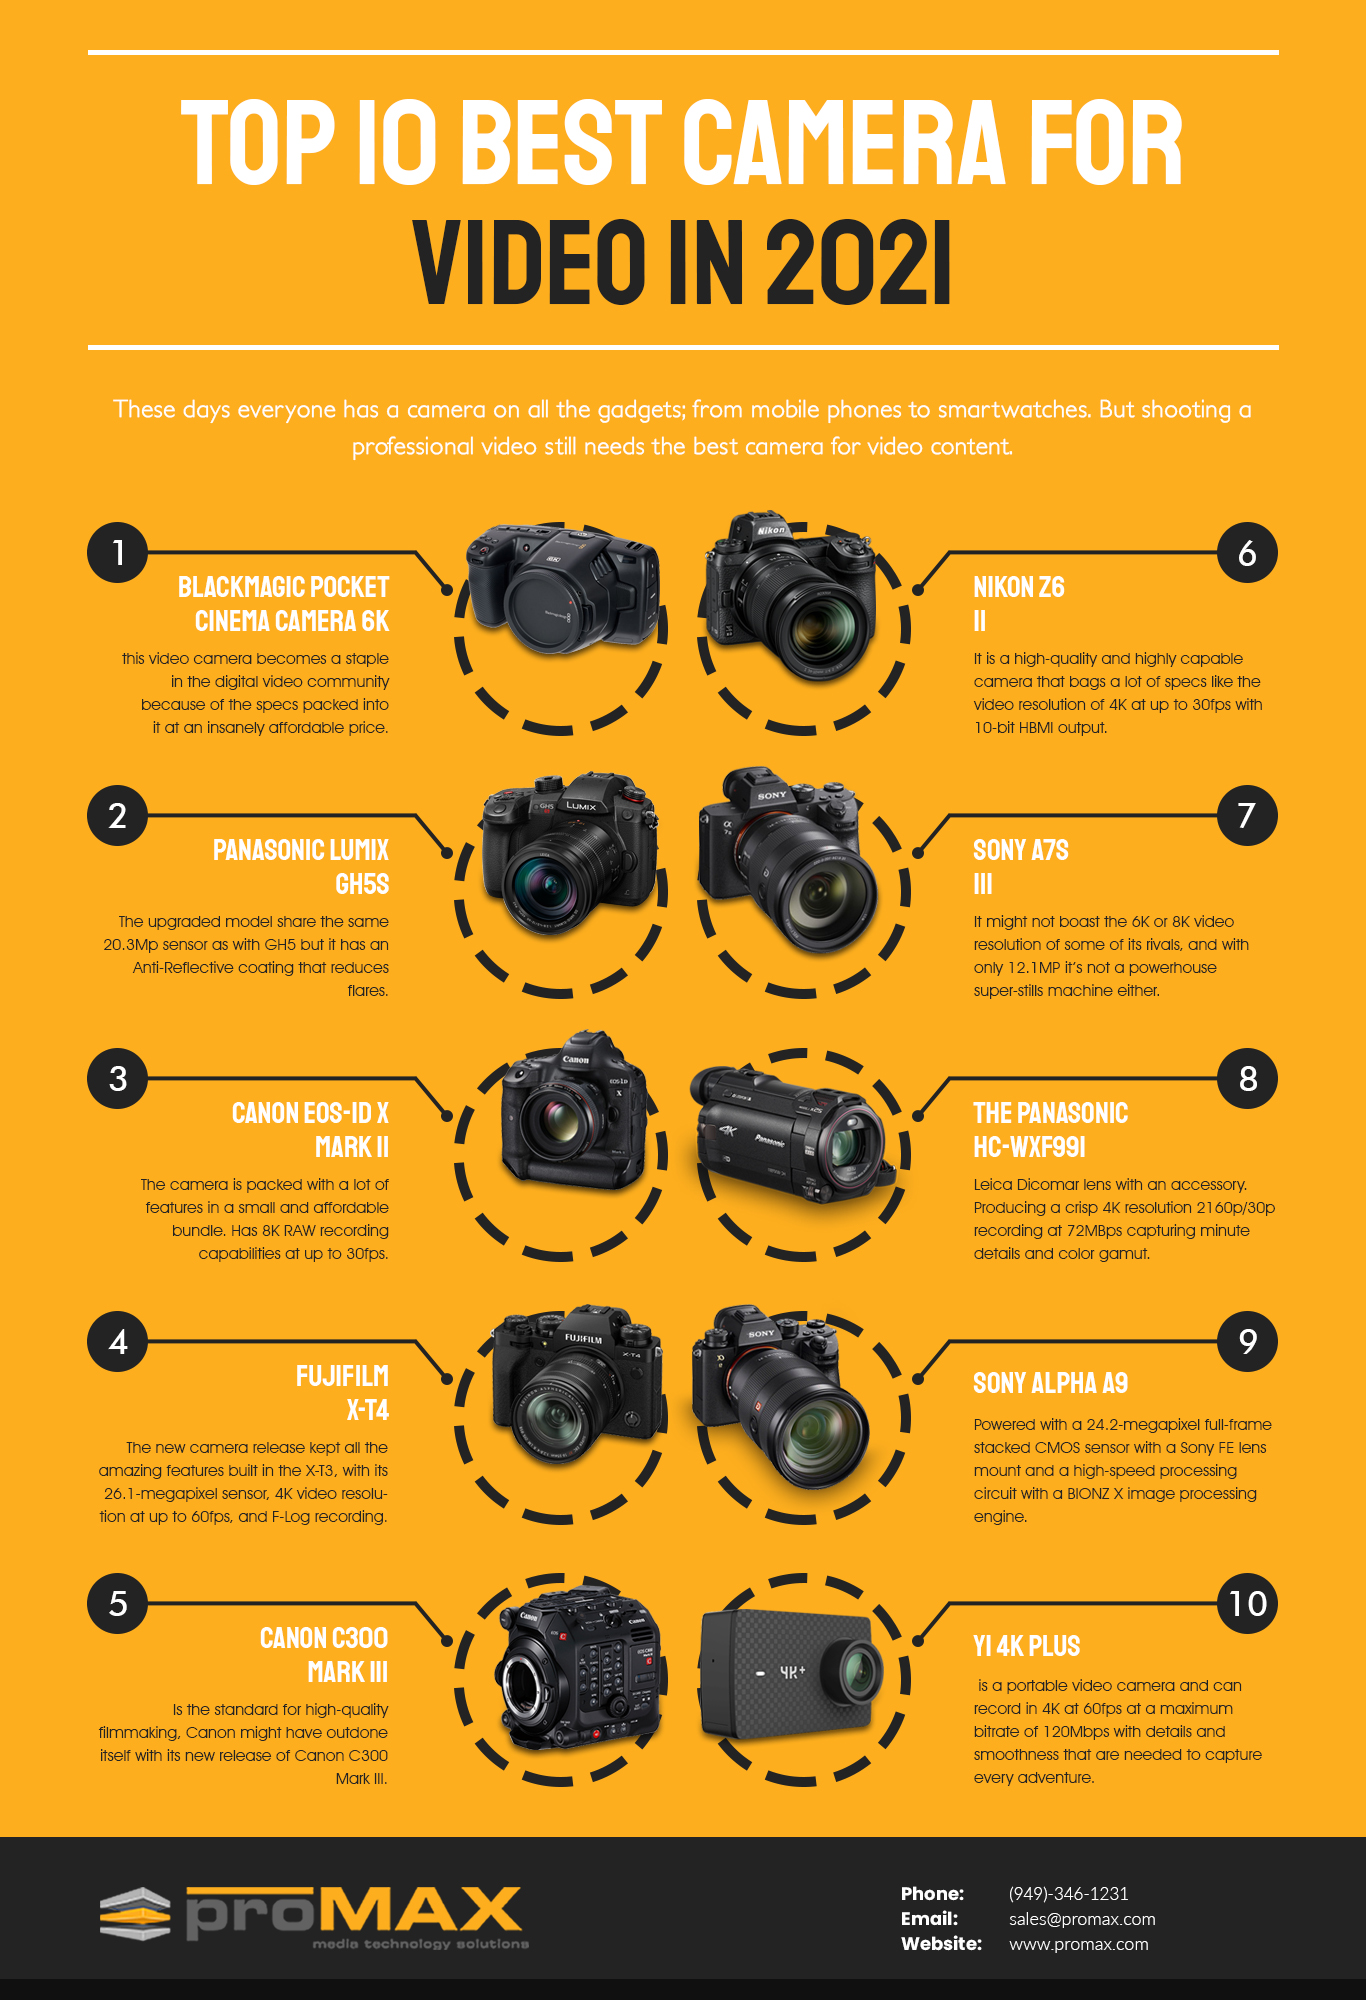 Top 10 Best Camera for Video in 2021